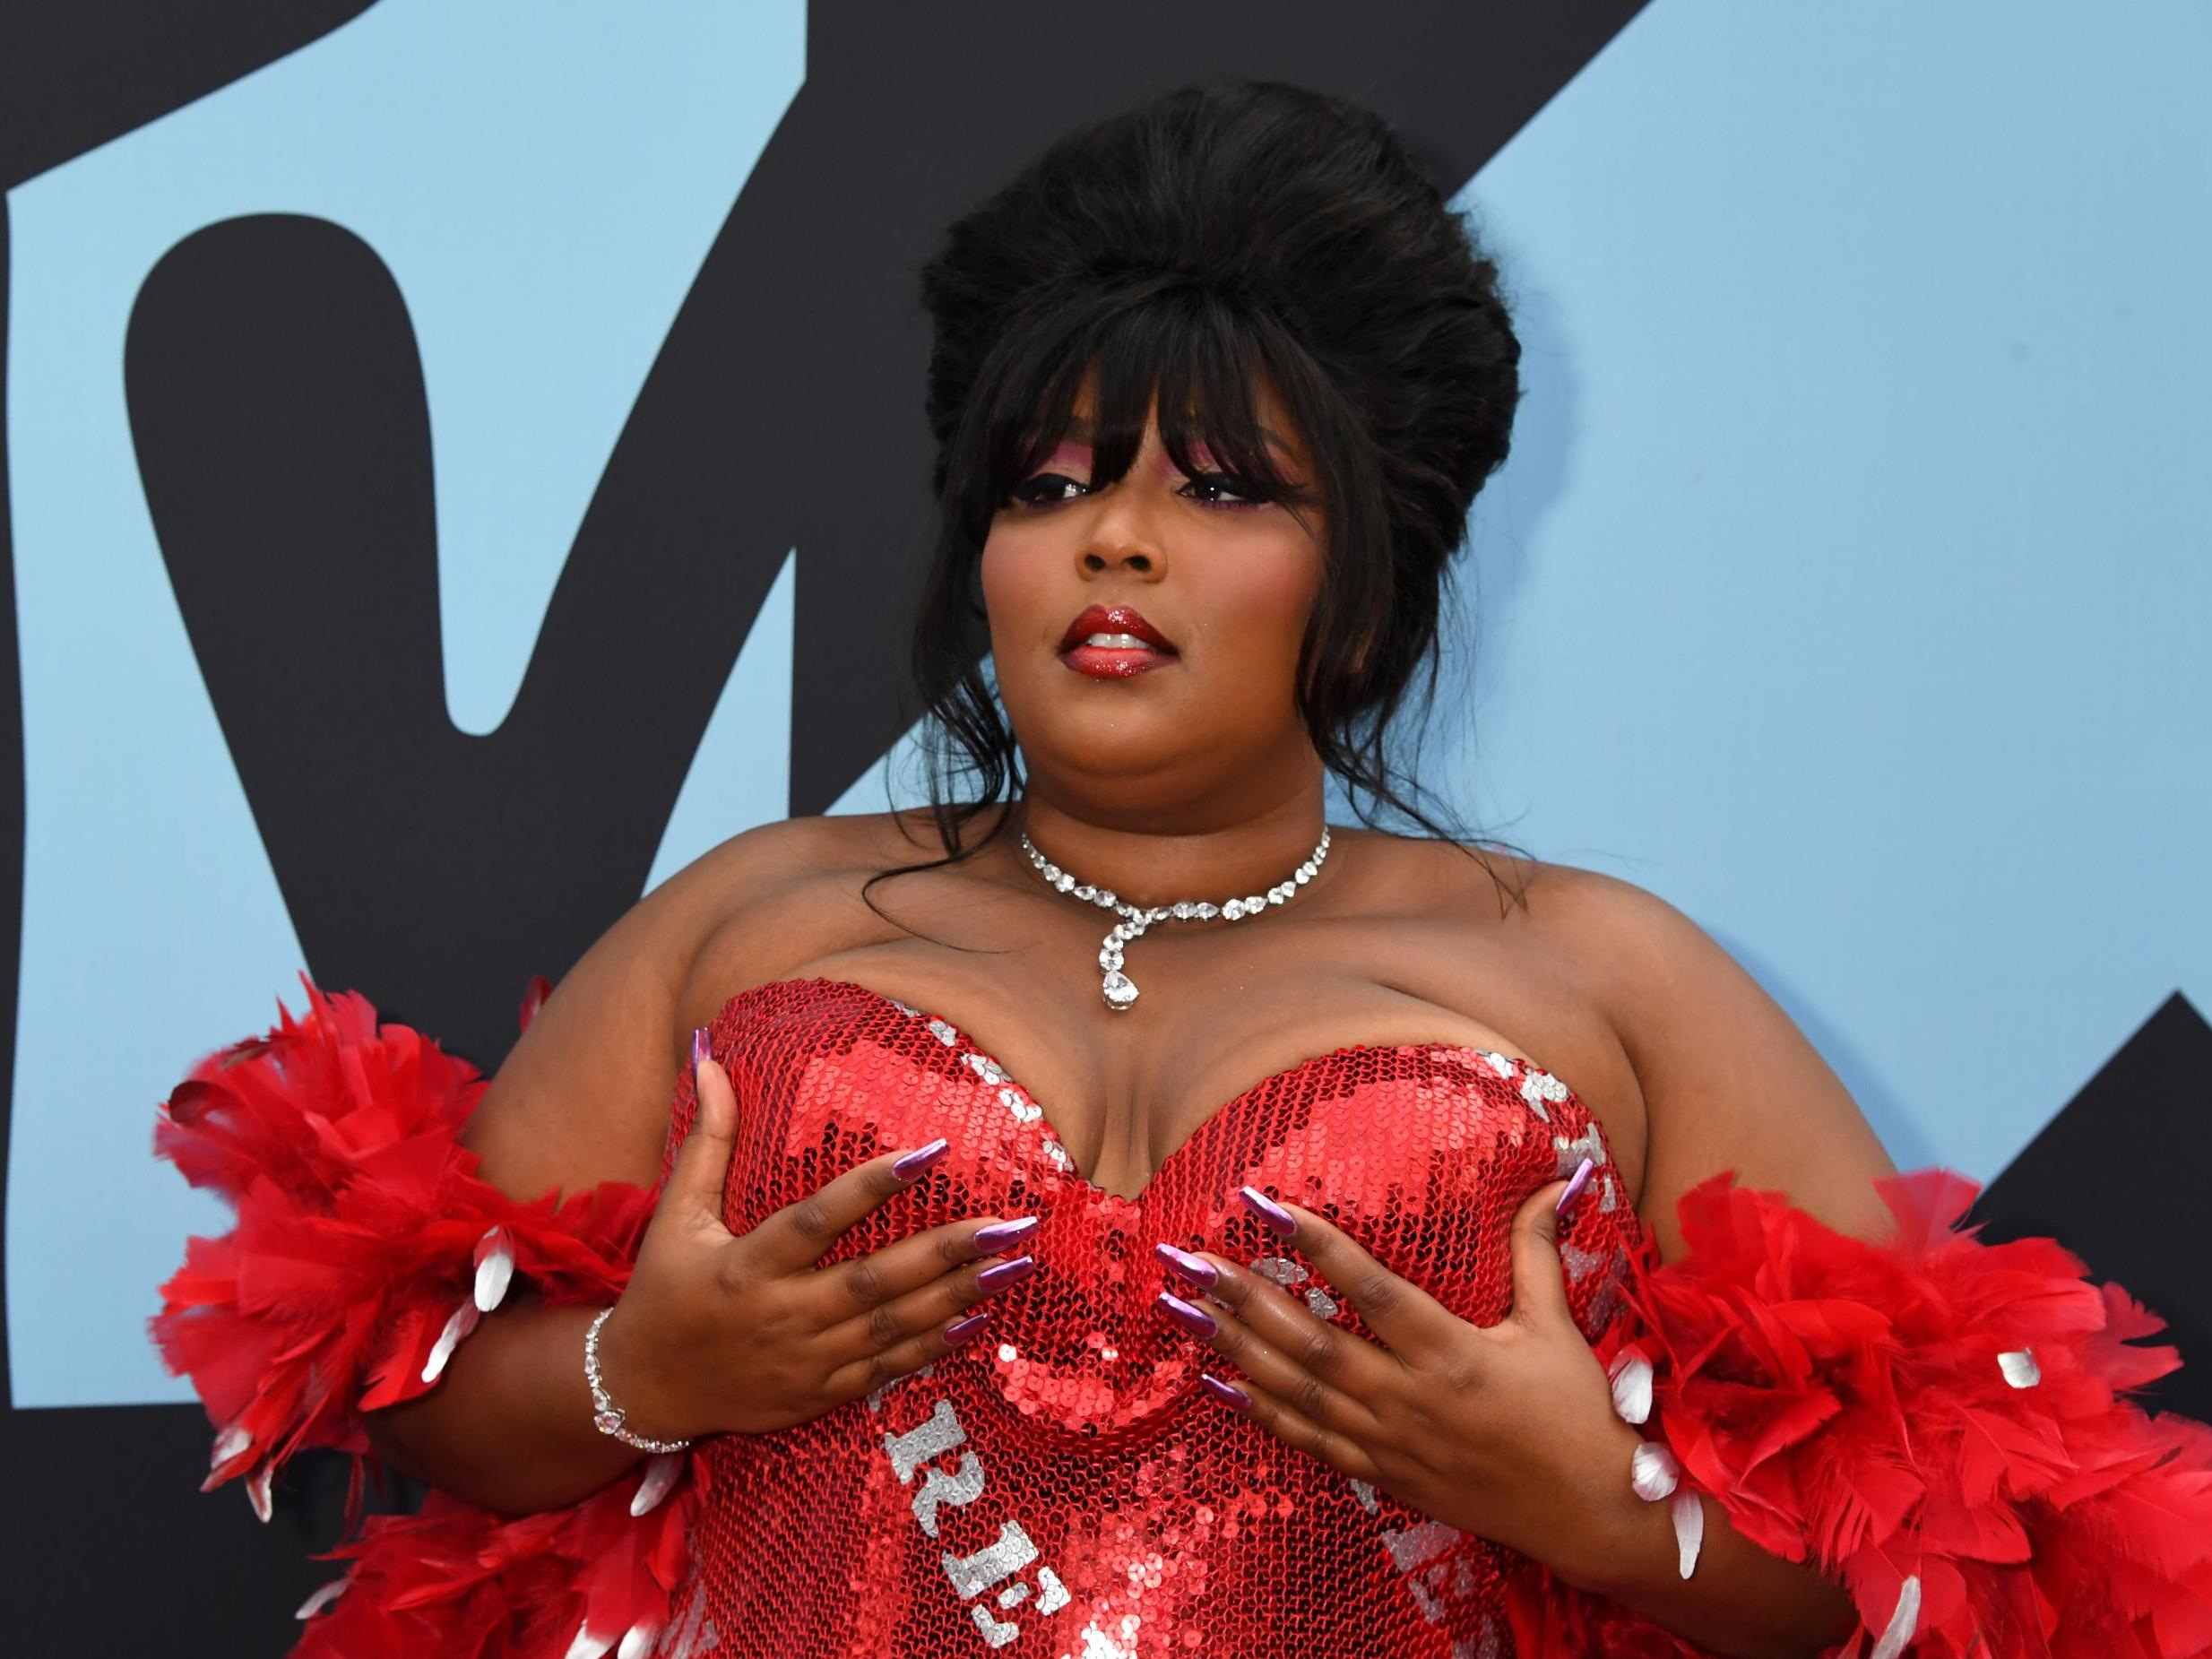 How Lizzo Became One Of The Biggest Pop Stars in The World